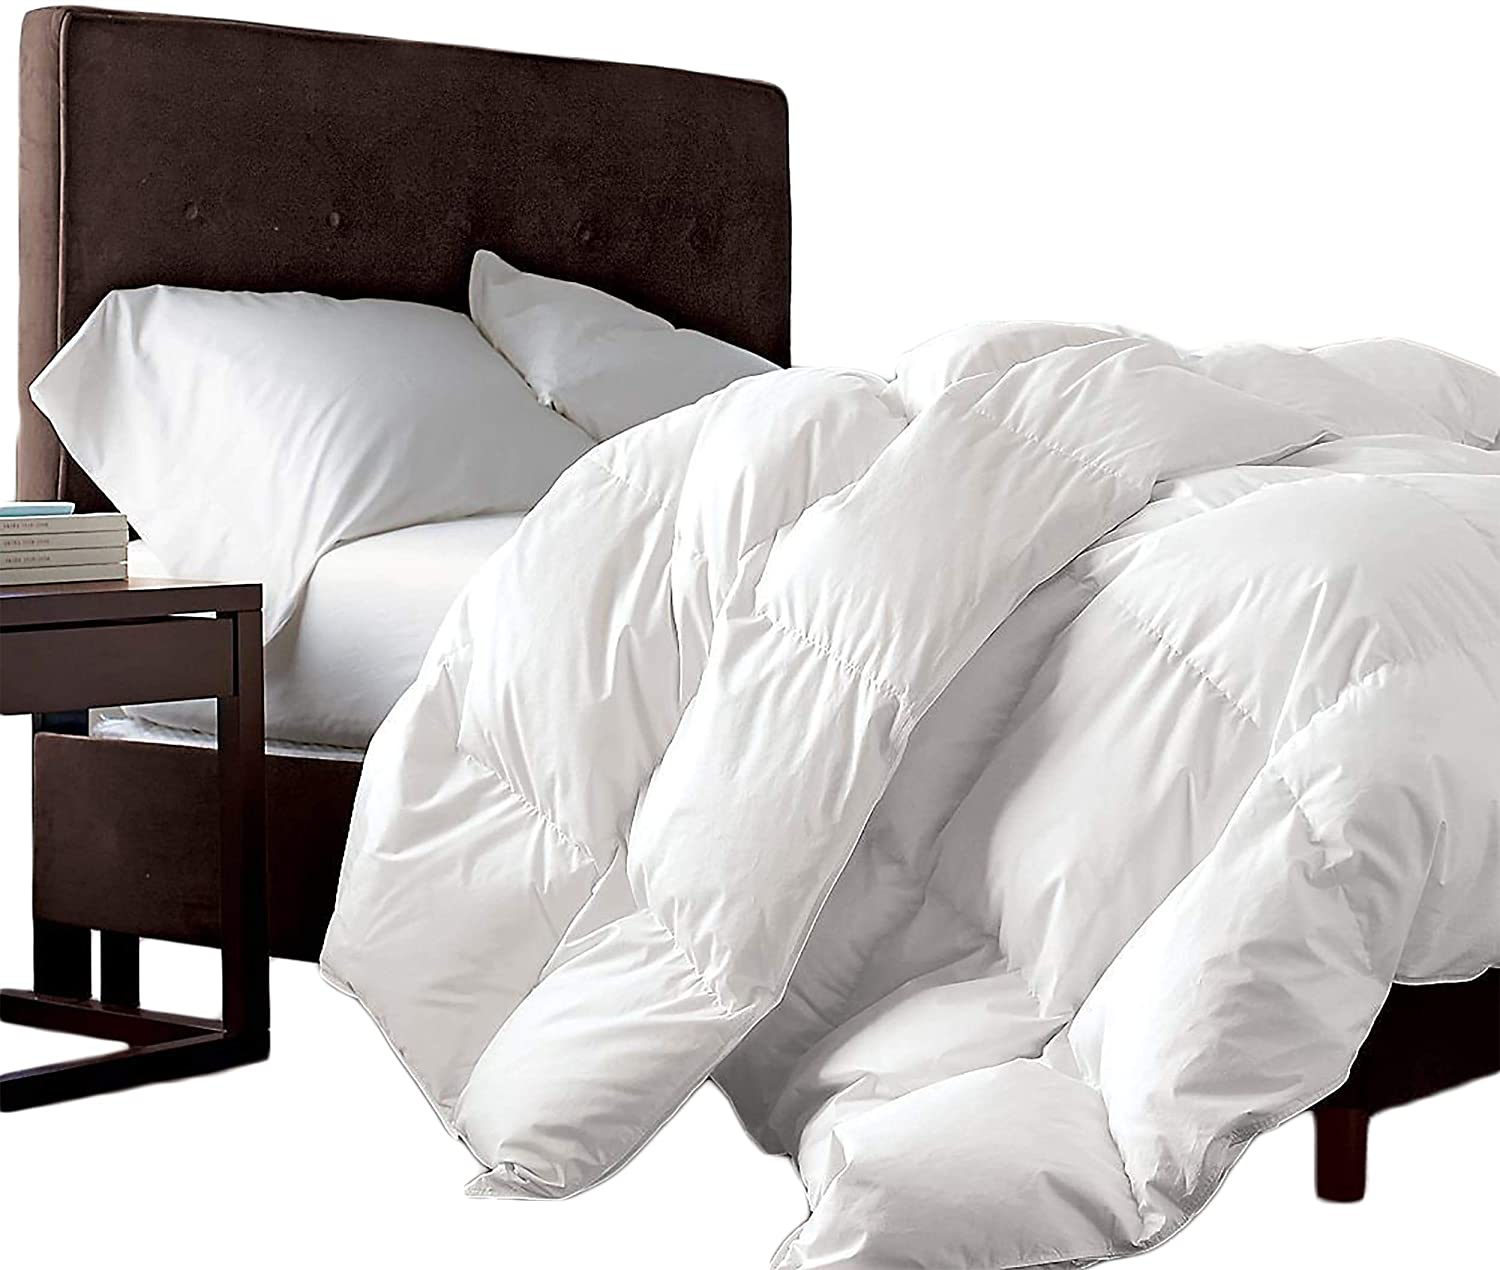 Luxurious King California King Size Siberian Goose Down Comforter 1200 Thread Count 100 Egyptian Cotton 50 Oz Fill Weight 1200tc White Solid Kitchen Dining